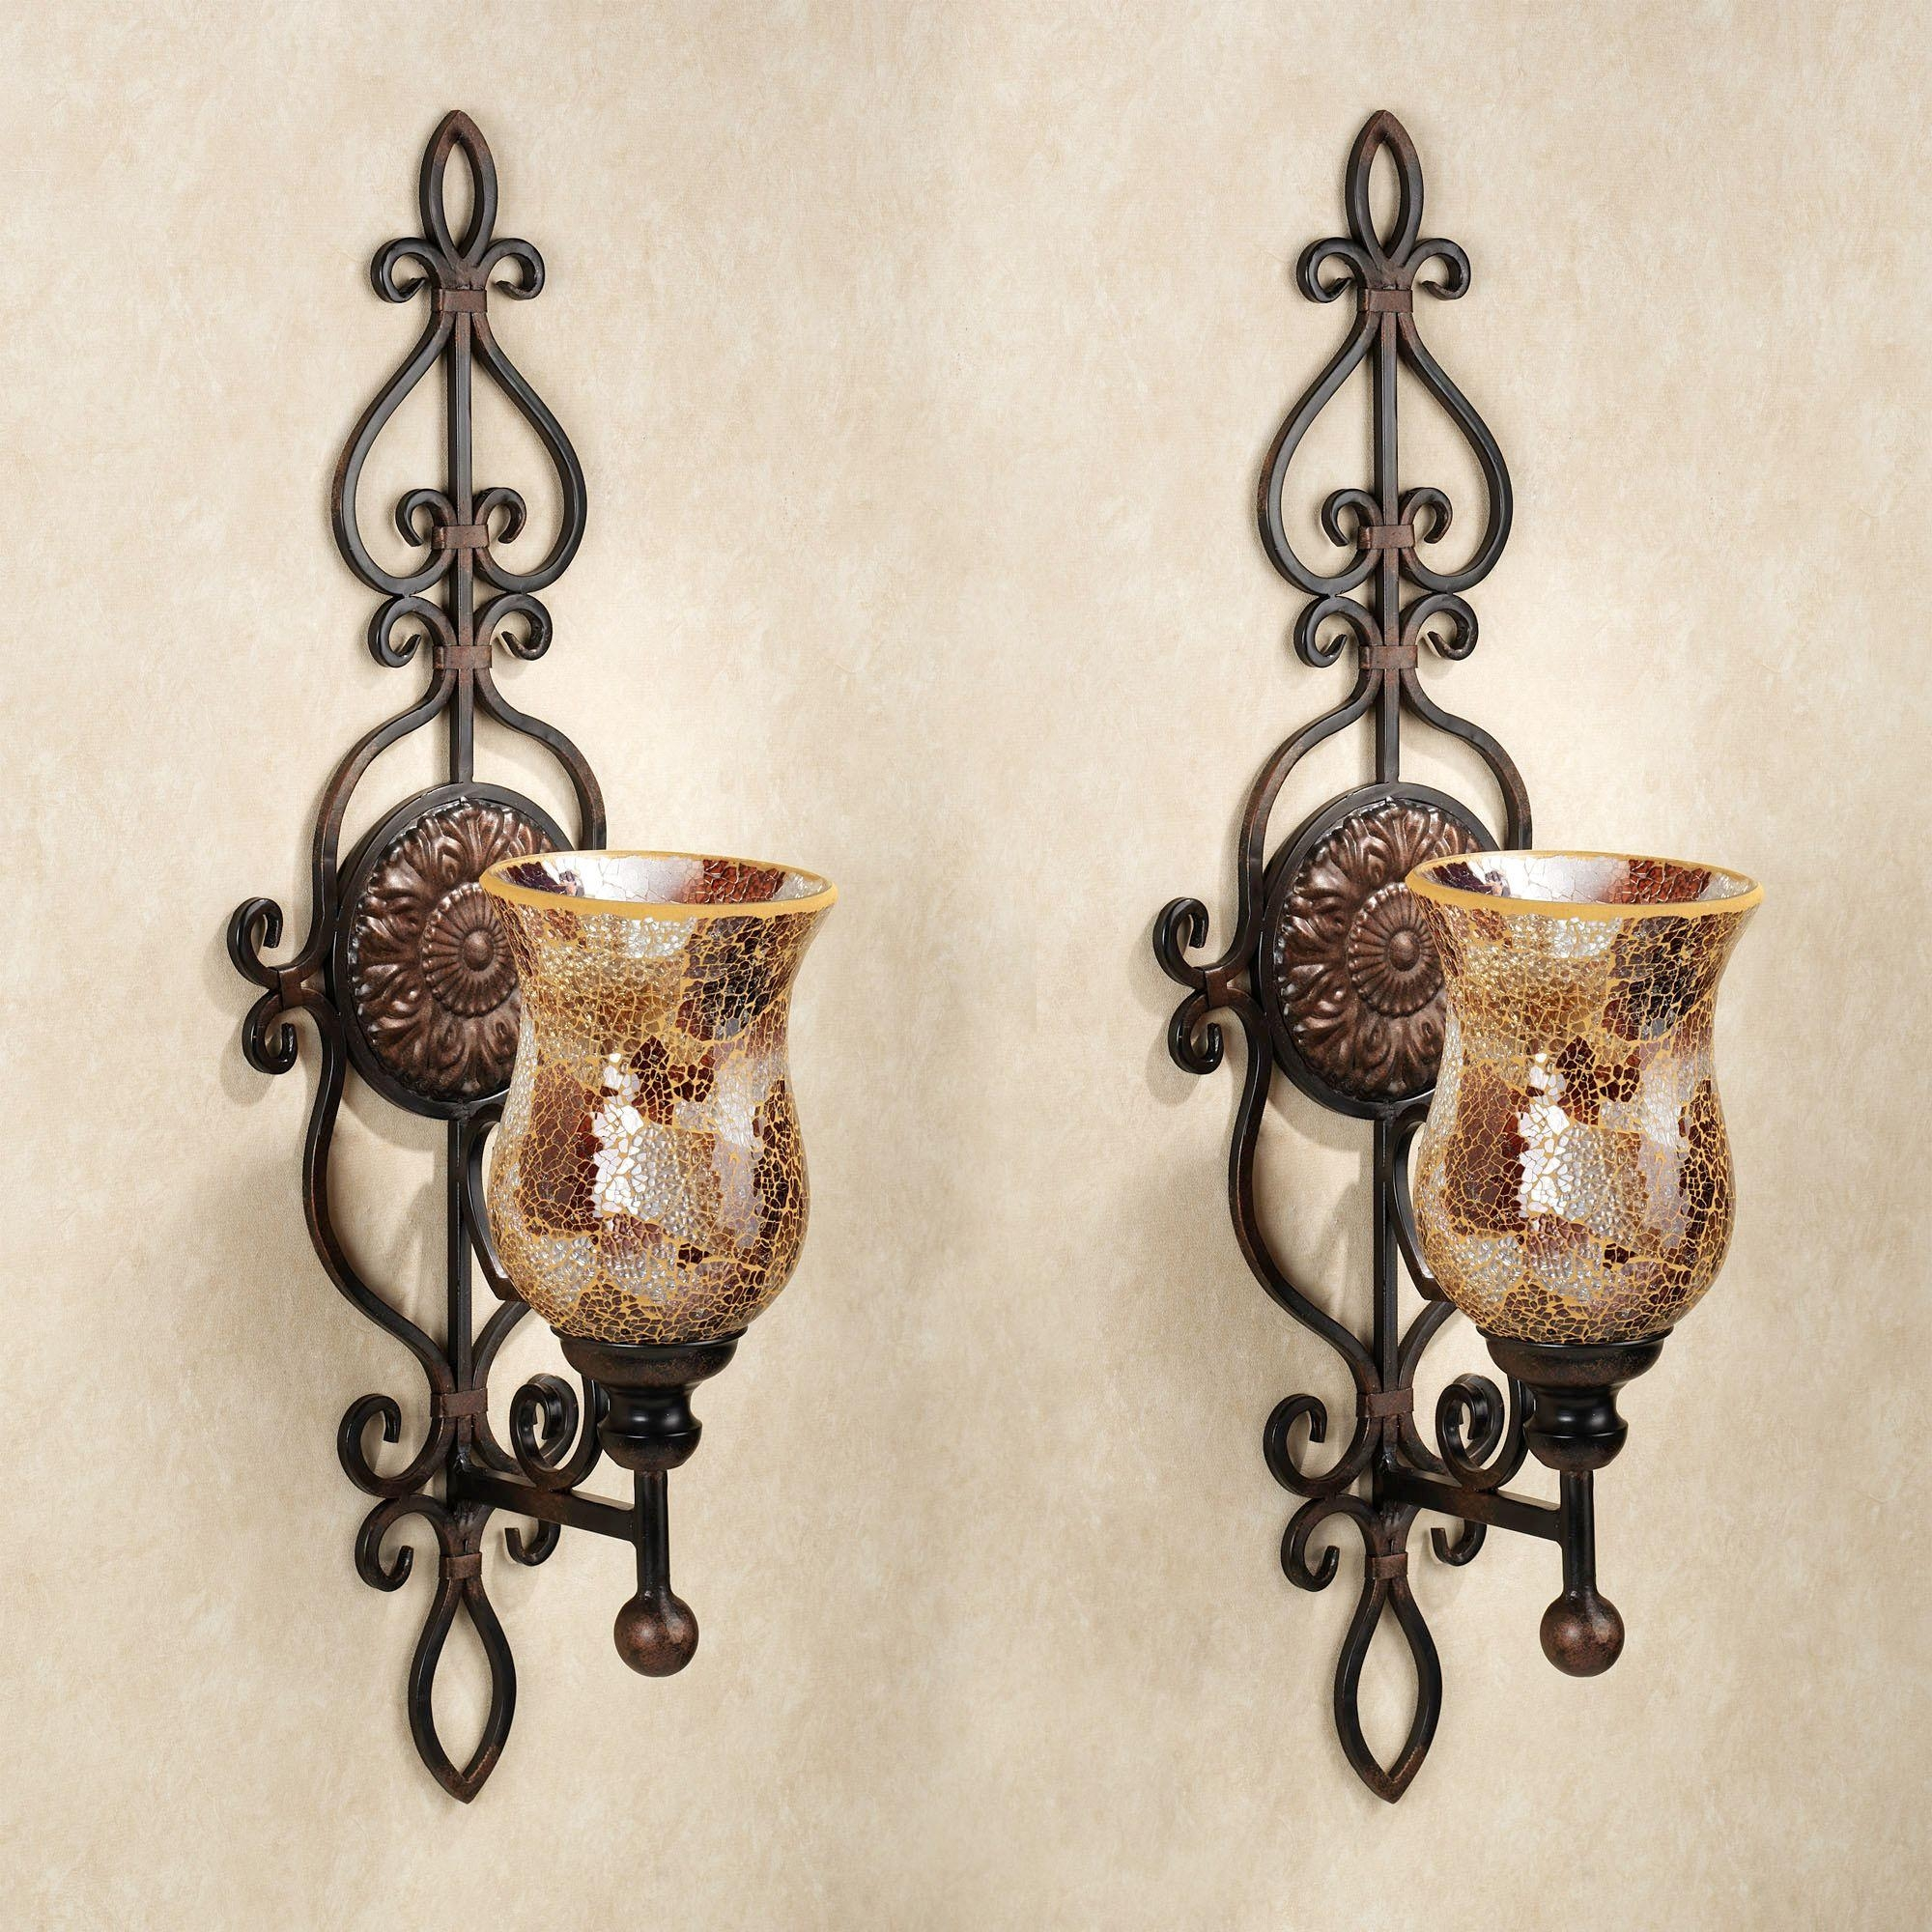 Double Light Ivory Crystal Wall Sconce Rosenberryrooms Com Faux Regarding Faux Wrought Iron Wall Decors (Image 4 of 20)